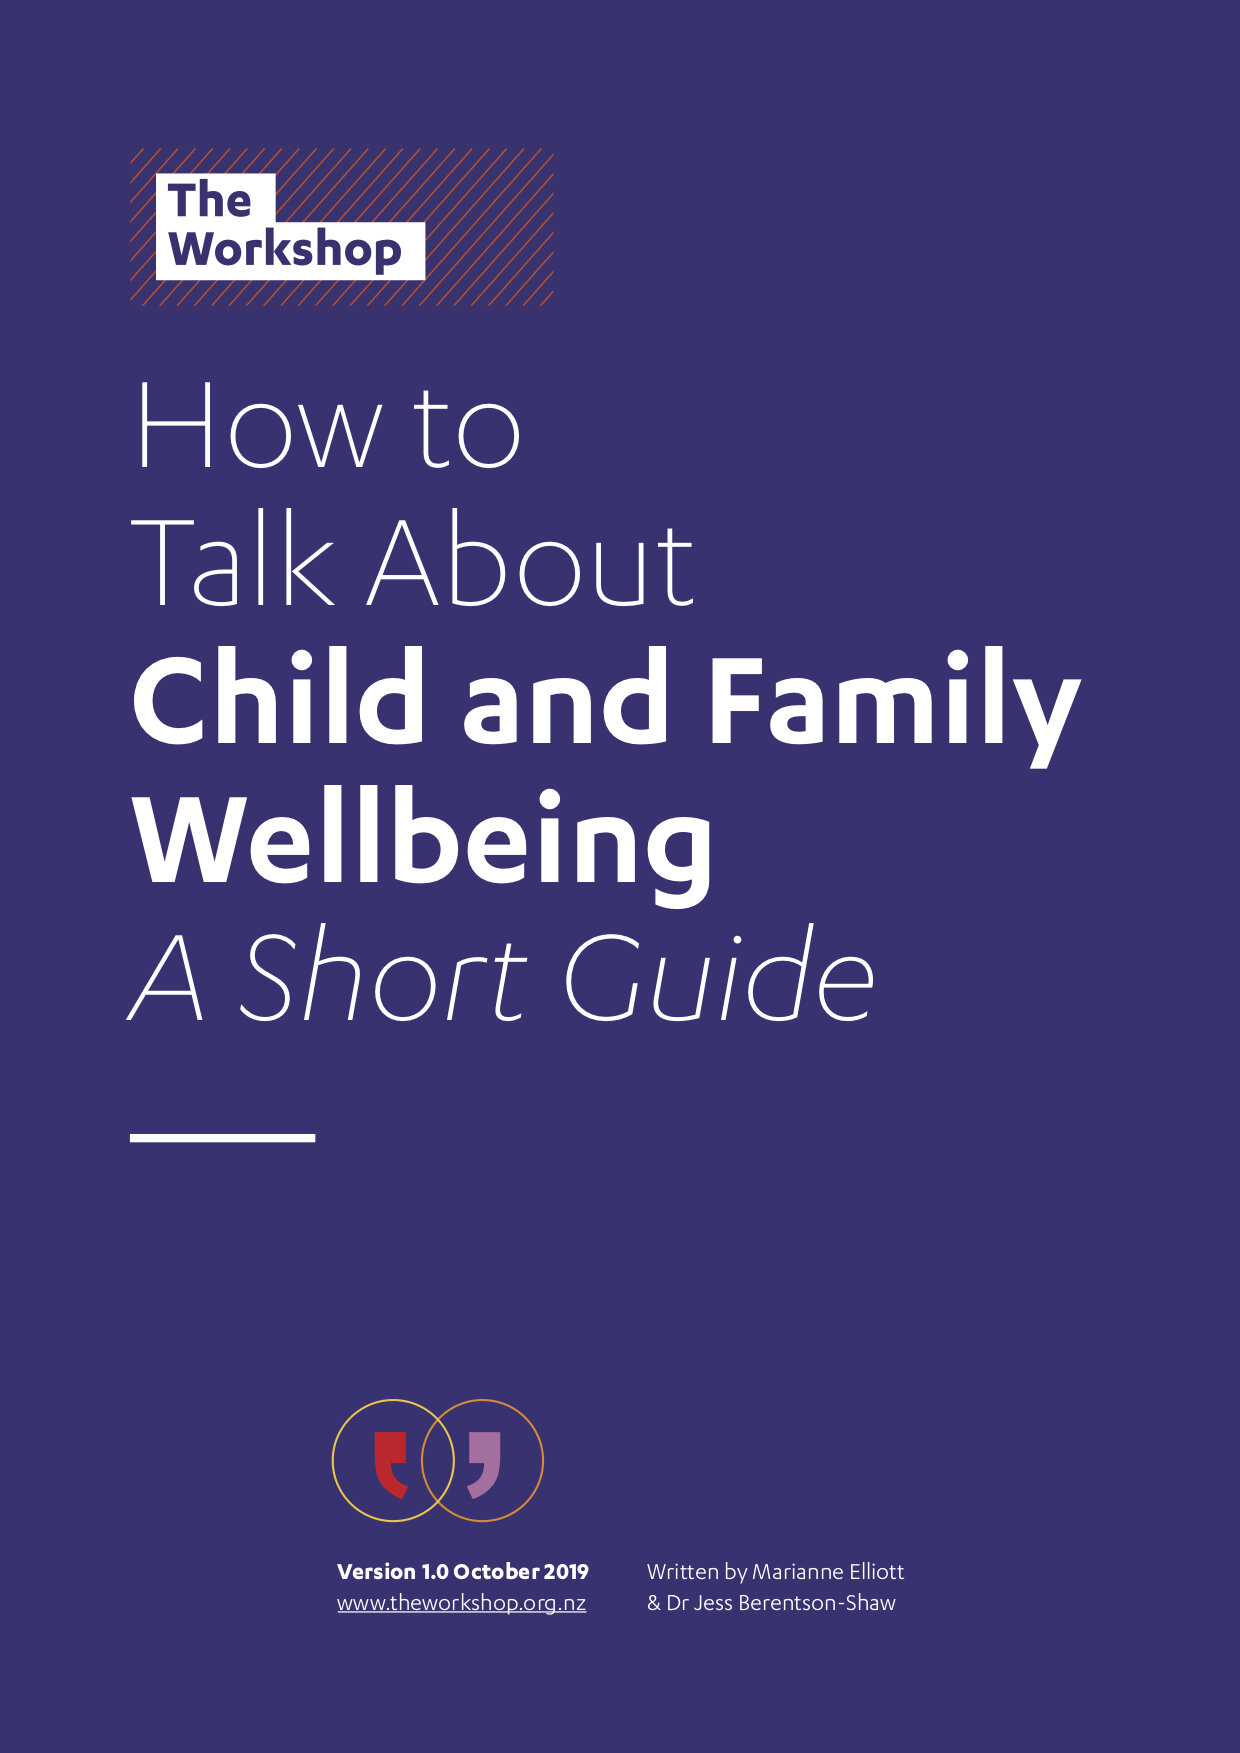 The-Workshop-Child-Family-Wellbeing cover.jpg